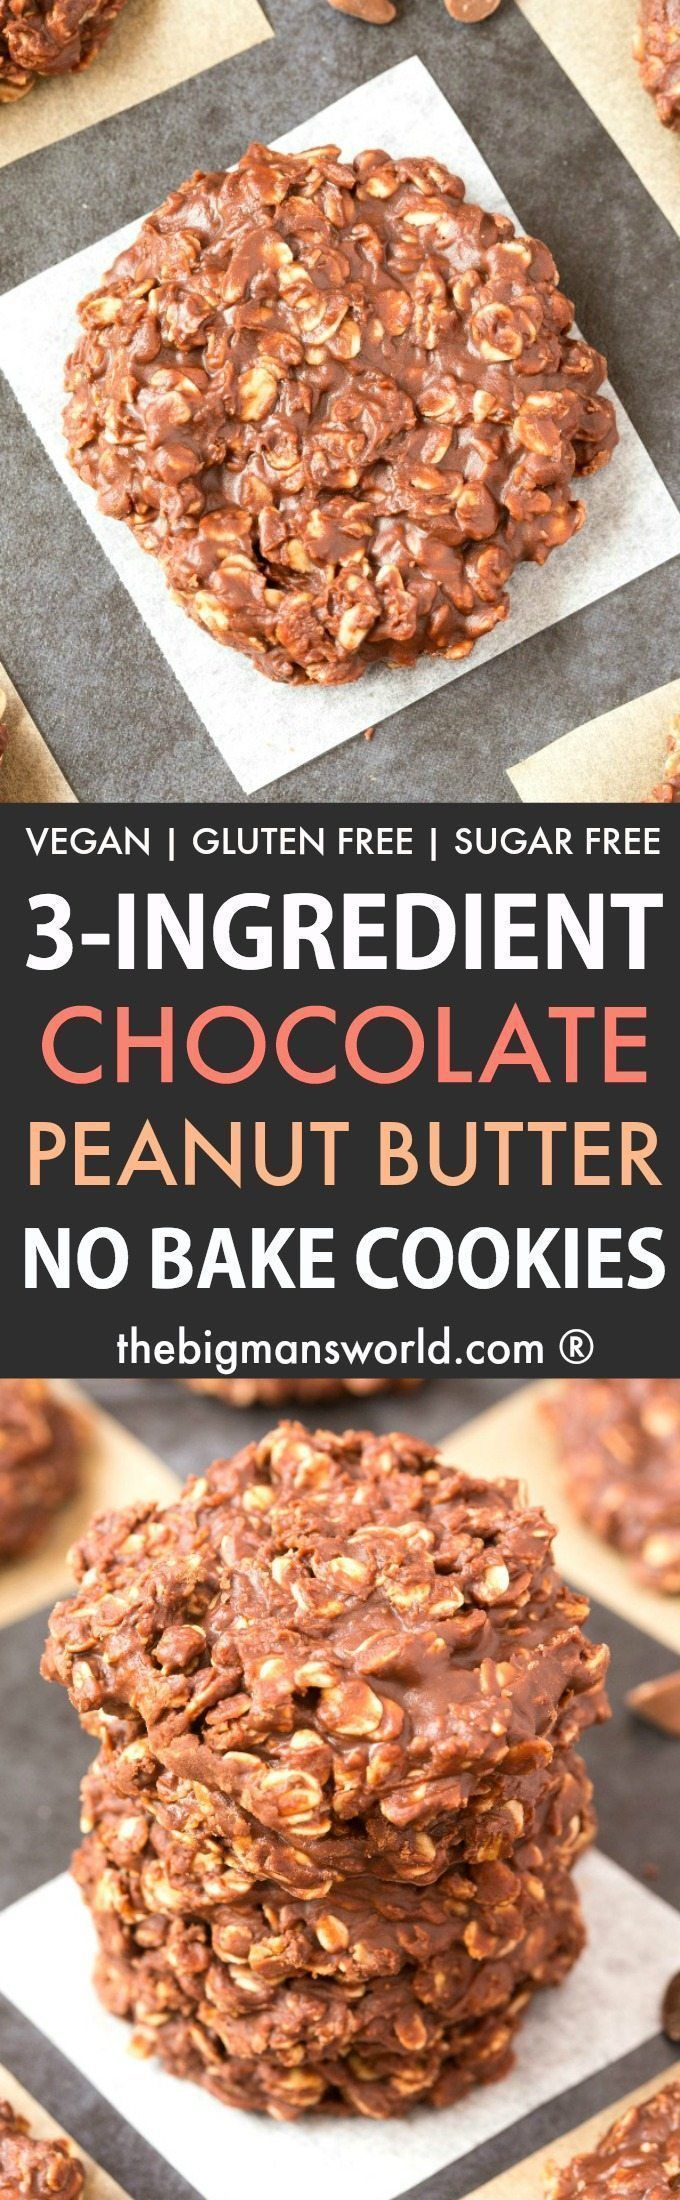 3-Ingredient No Bake Chocolate Peanut Butter Oatmeal Cookies (Gluten Free, Vegan, Sugar Free)- Make this easy no bake chocolate peanut butter cookies recipe which takes 5 minutes and needs just 3 ingredients- Soft, chewy and with a peanut-free option! #nobakecookies #chocolate #peanutbutter #glutenfree #vegan #sugarfree | Recipe on thebigmansworld.com